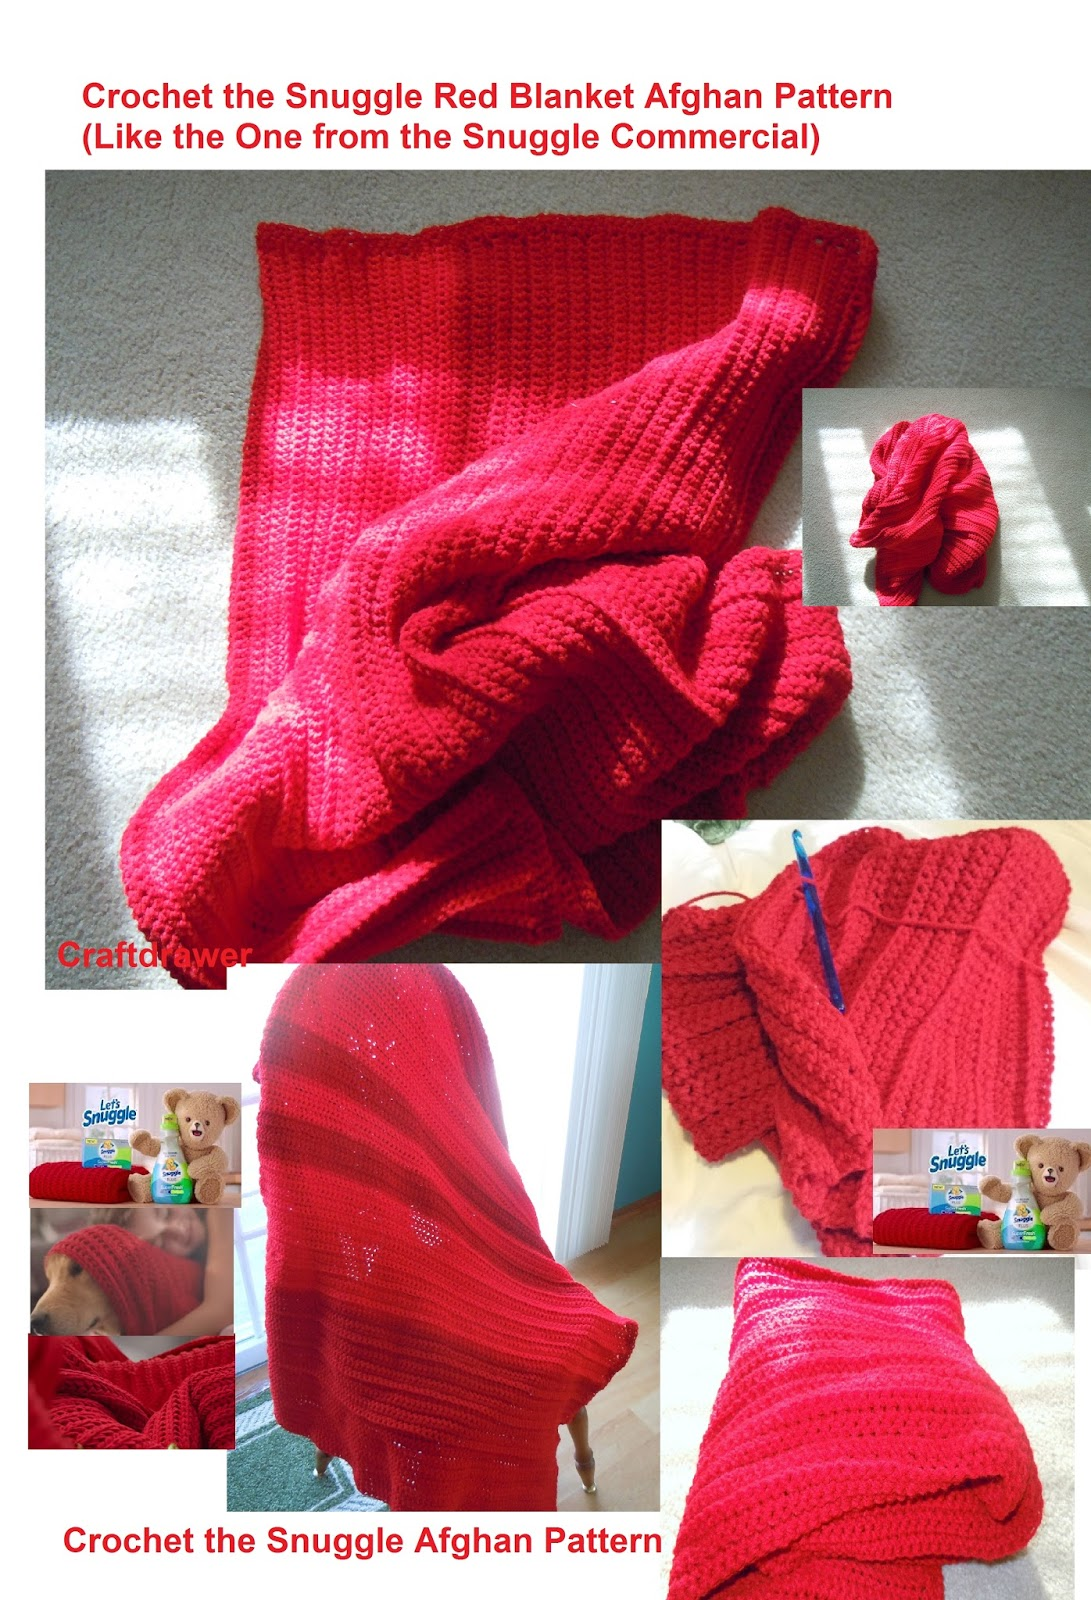 Craftdrawer Crafts: How to Crochet the Snuggle Super Fresh Red ...